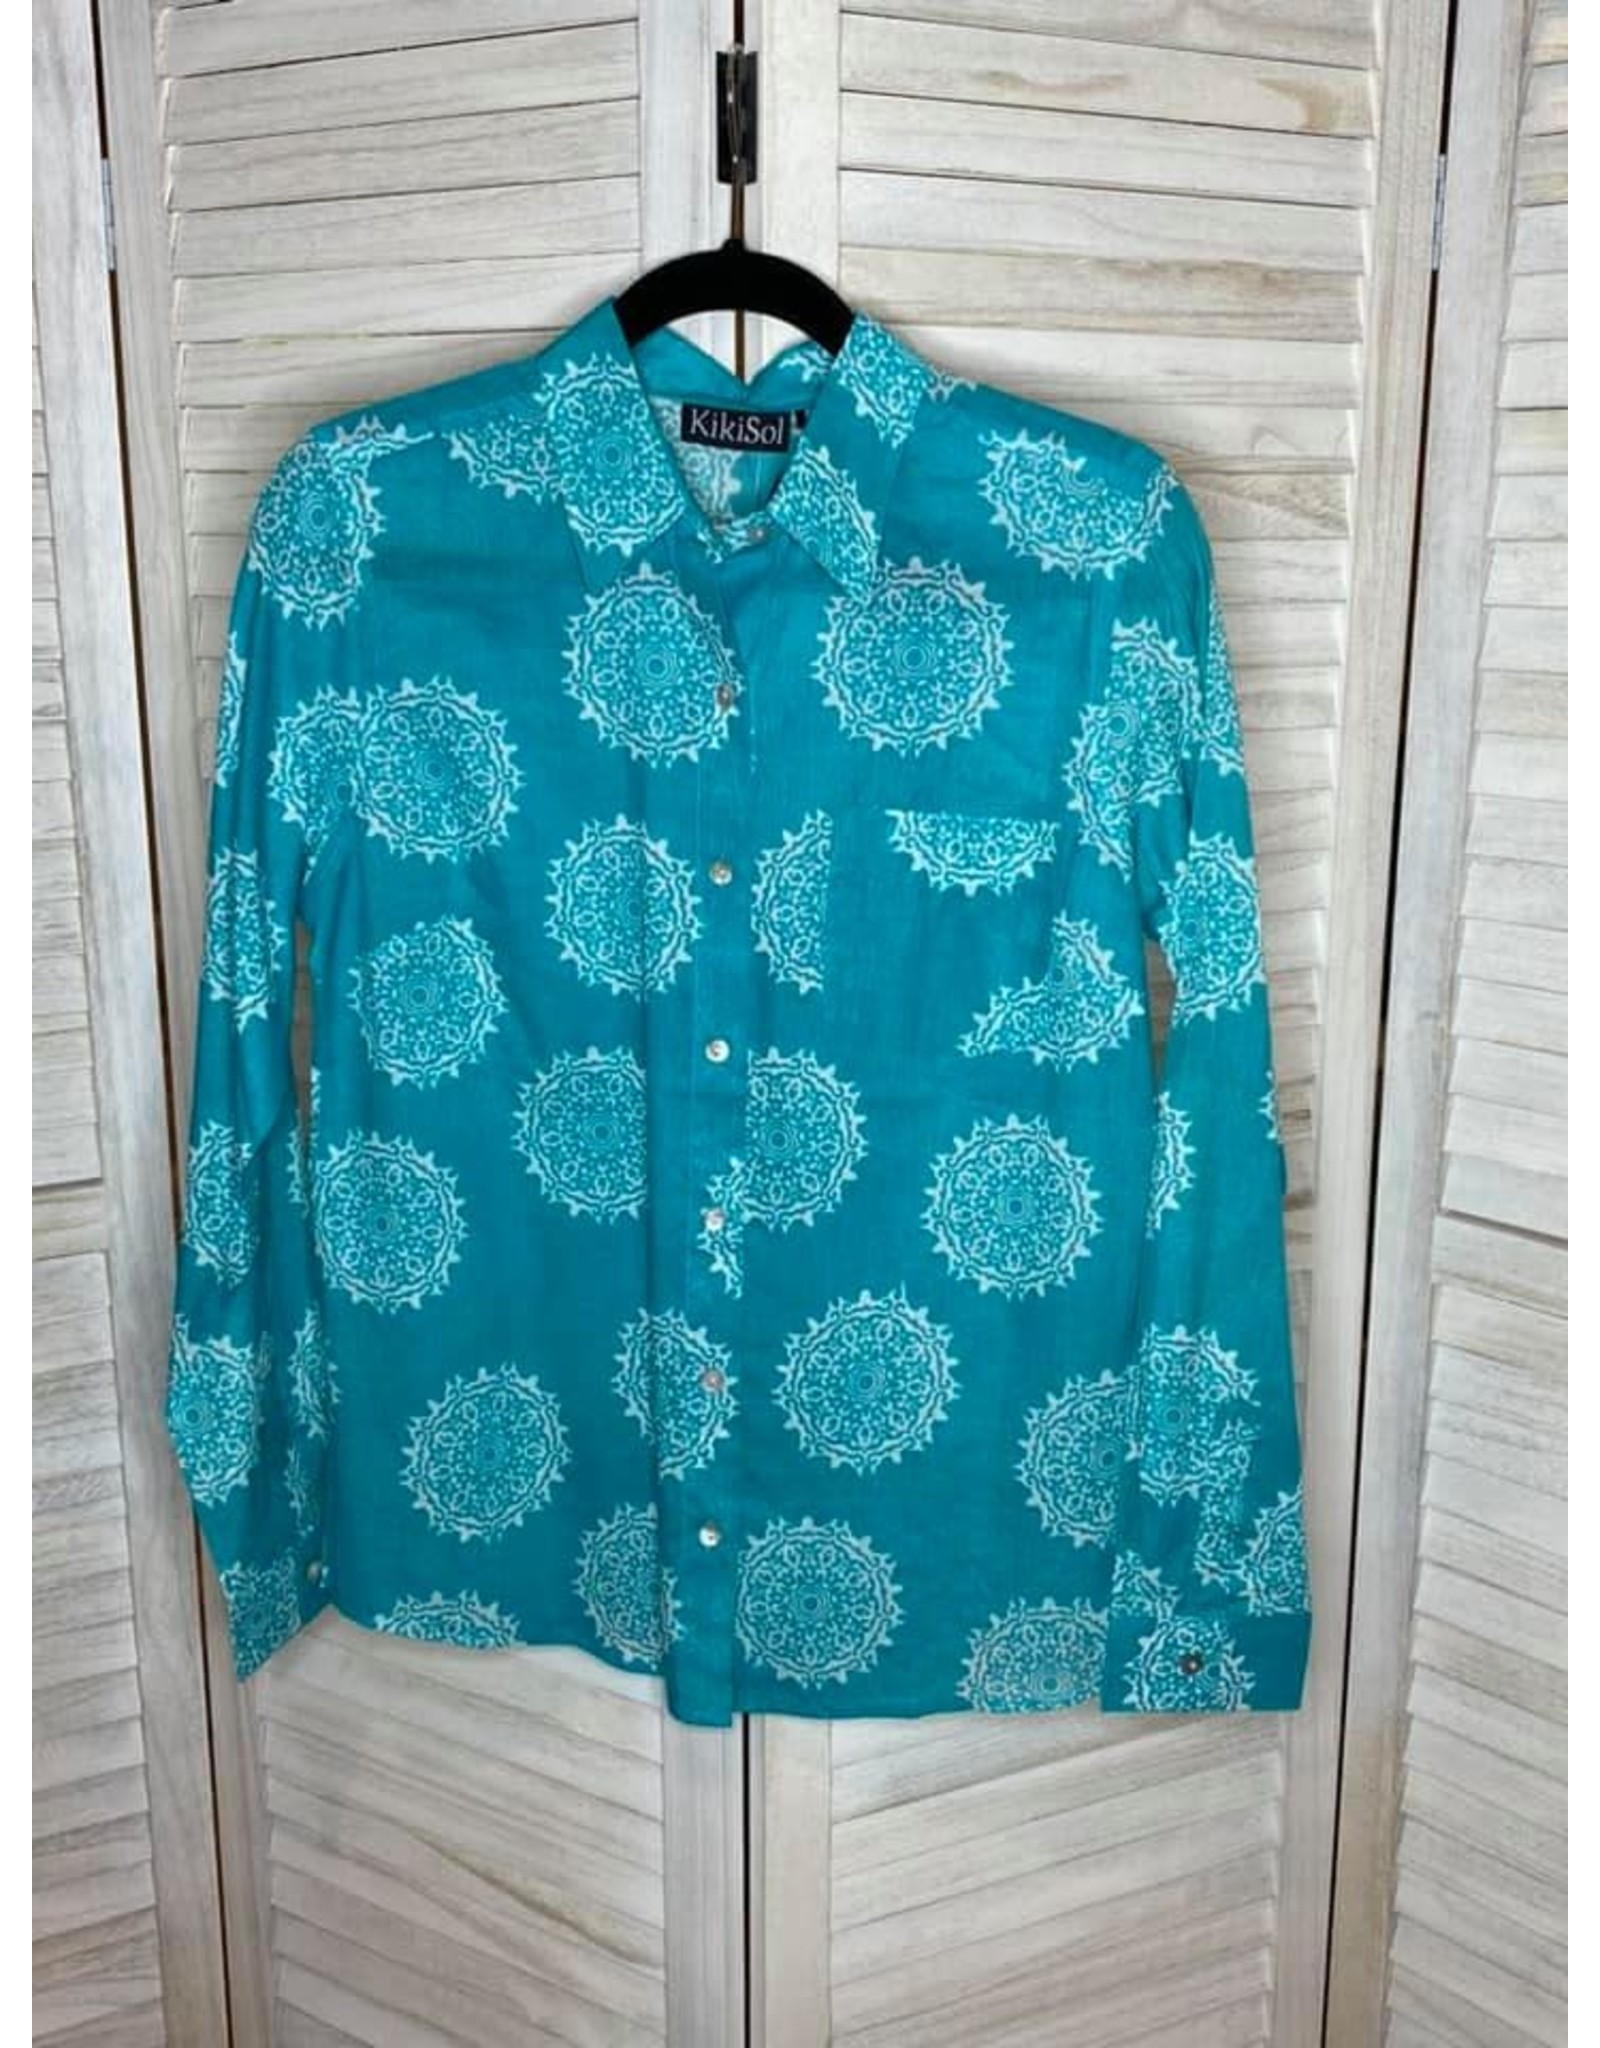 KikiSol Aqua Moroccan Button Down Shirt